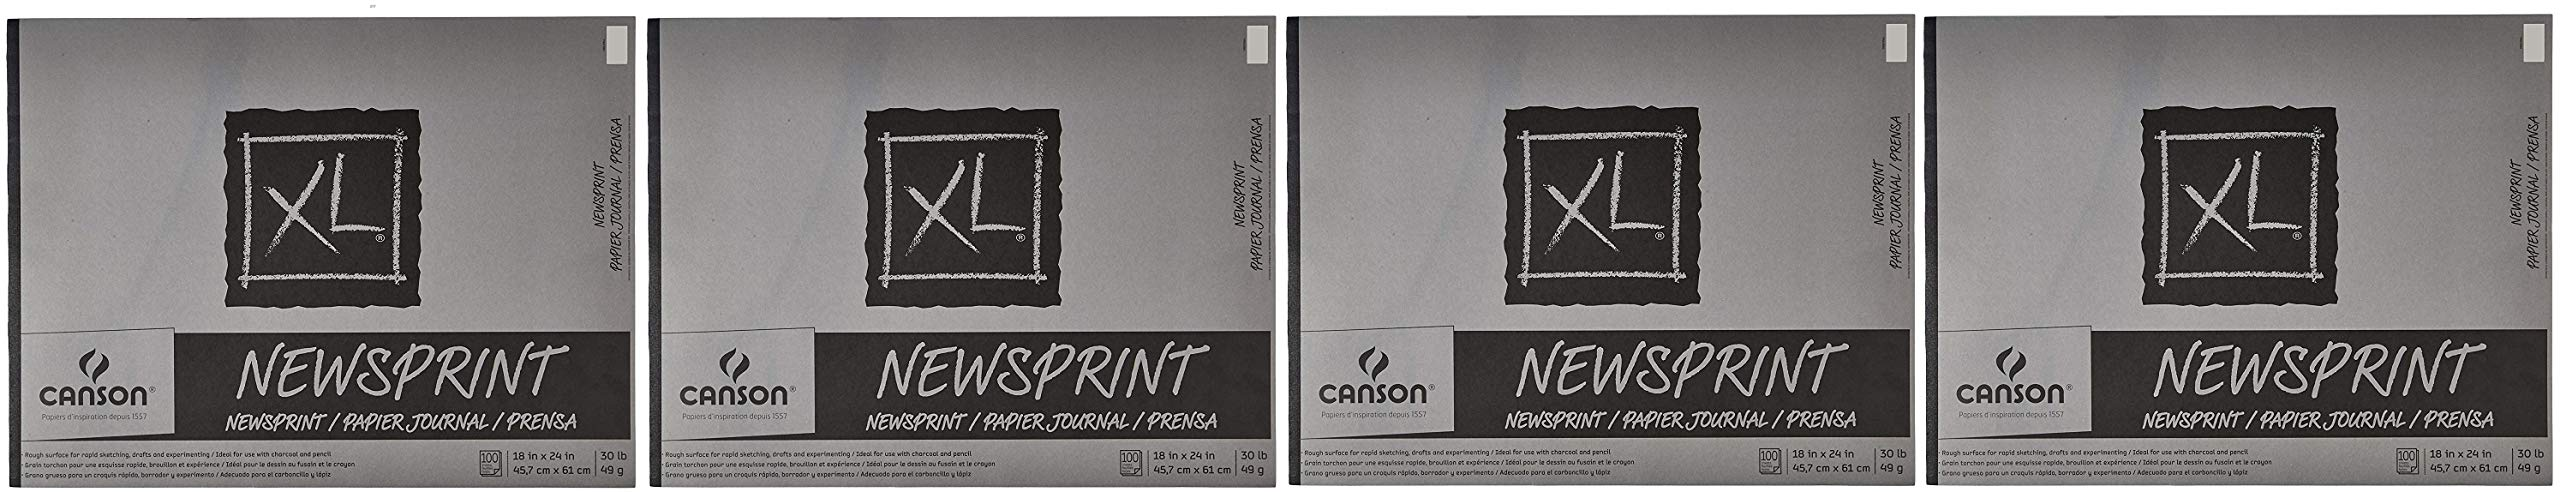 Canson Biggie Newsprint Pad - 18 x 24 Inches - 100 Sheet Pad (4-(Pack))